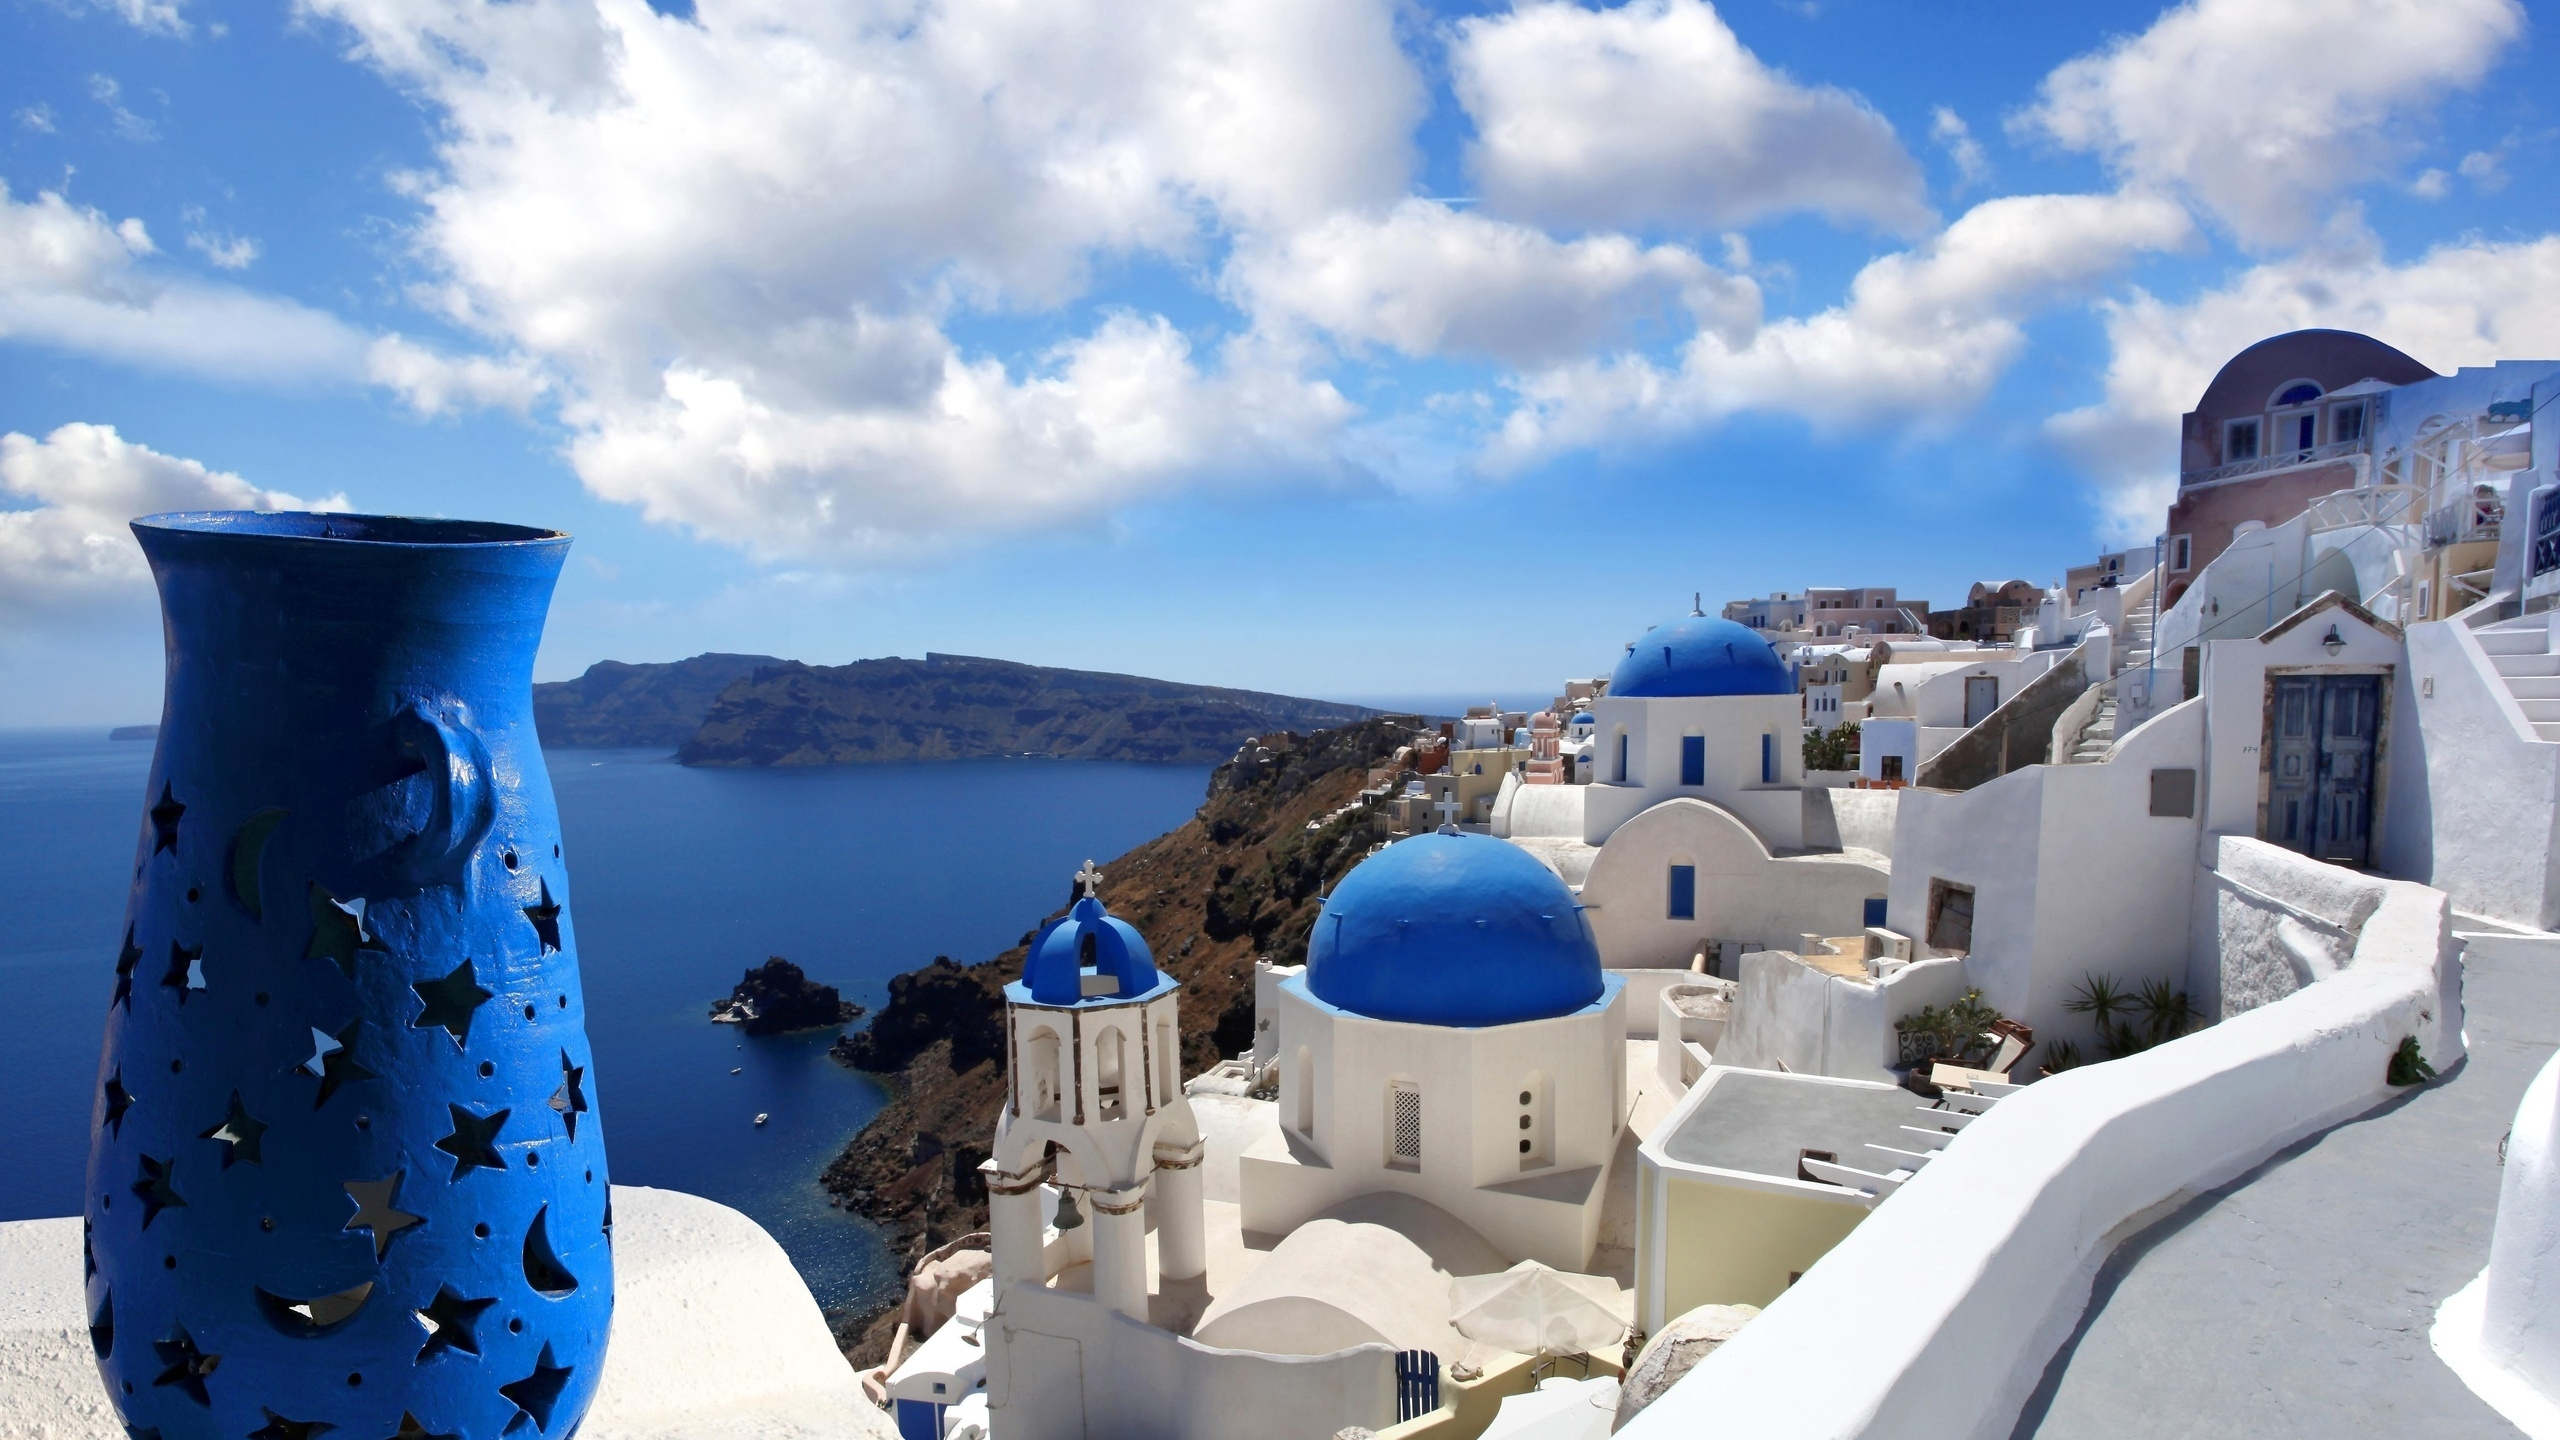 Santorini Wallpapers Pictures Images HD Wallpapers Download Free Images Wallpaper [1000image.com]